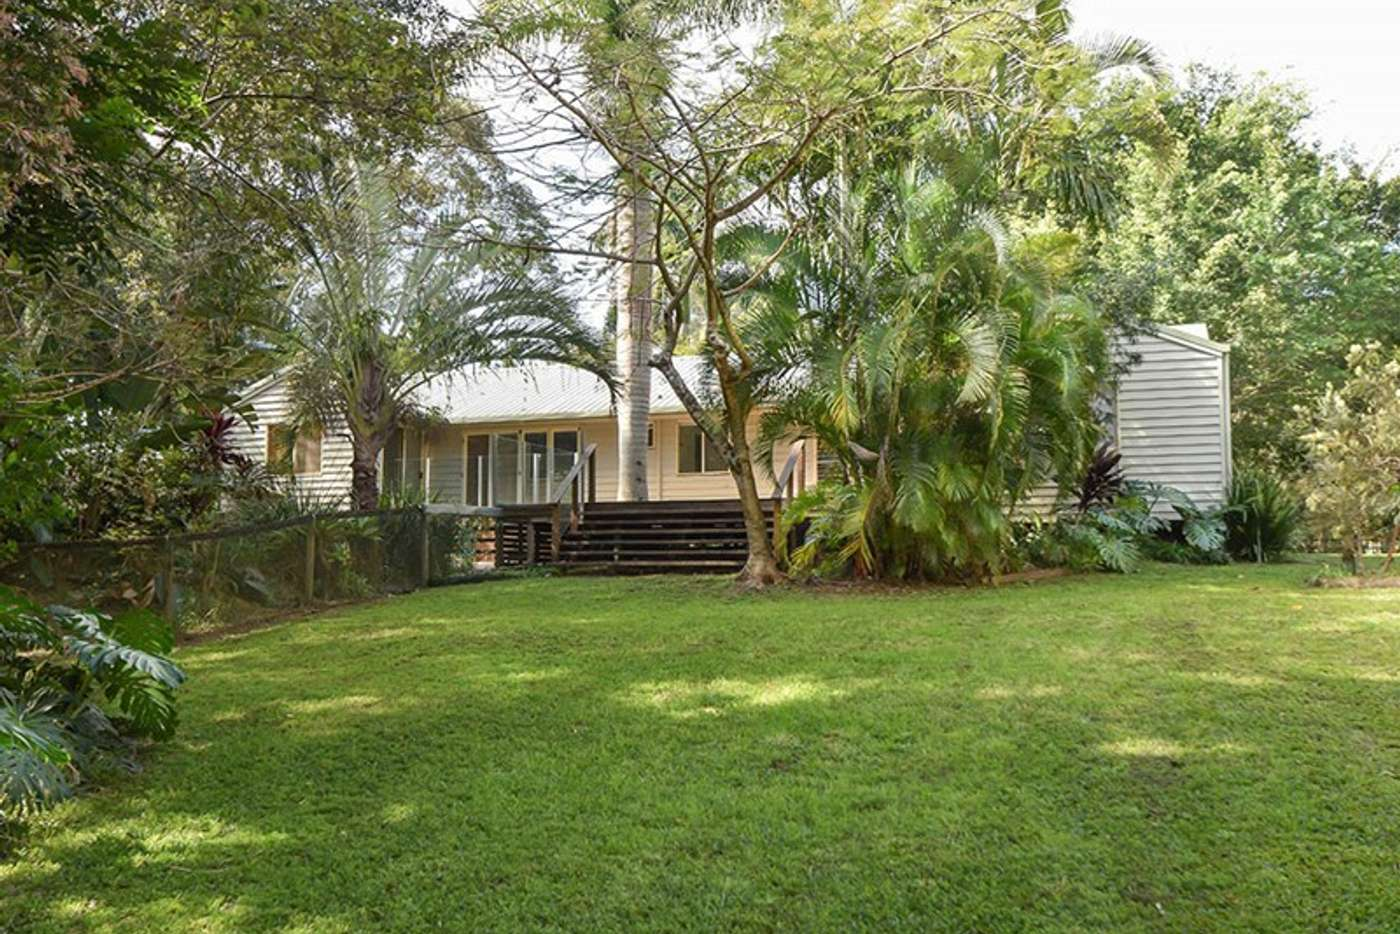 Main view of Homely house listing, 160 Nandroya Road, Cooroy QLD 4563